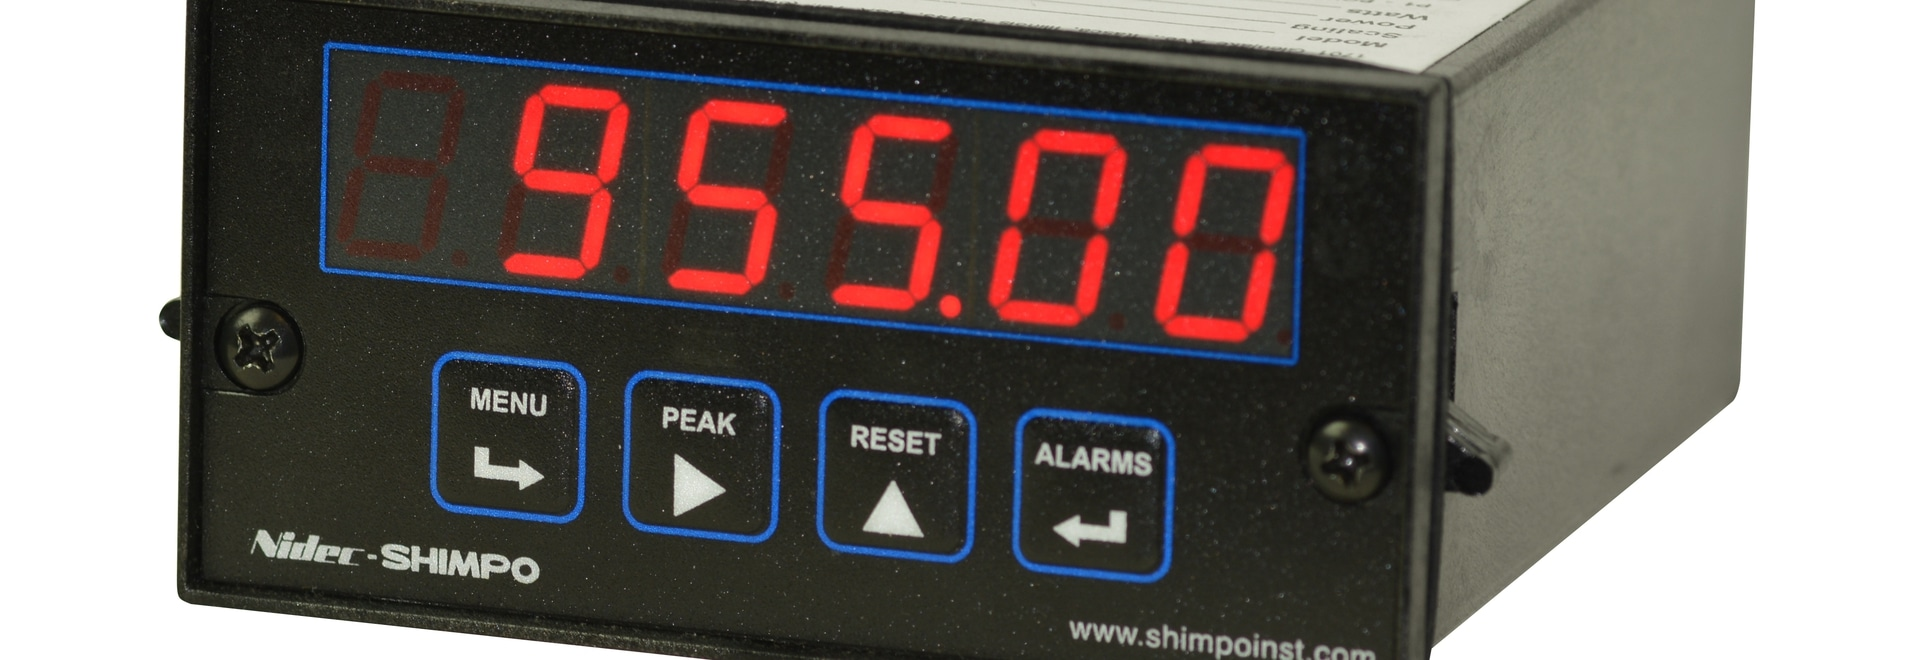 NEW SHIMPO PM Process Panel Meters